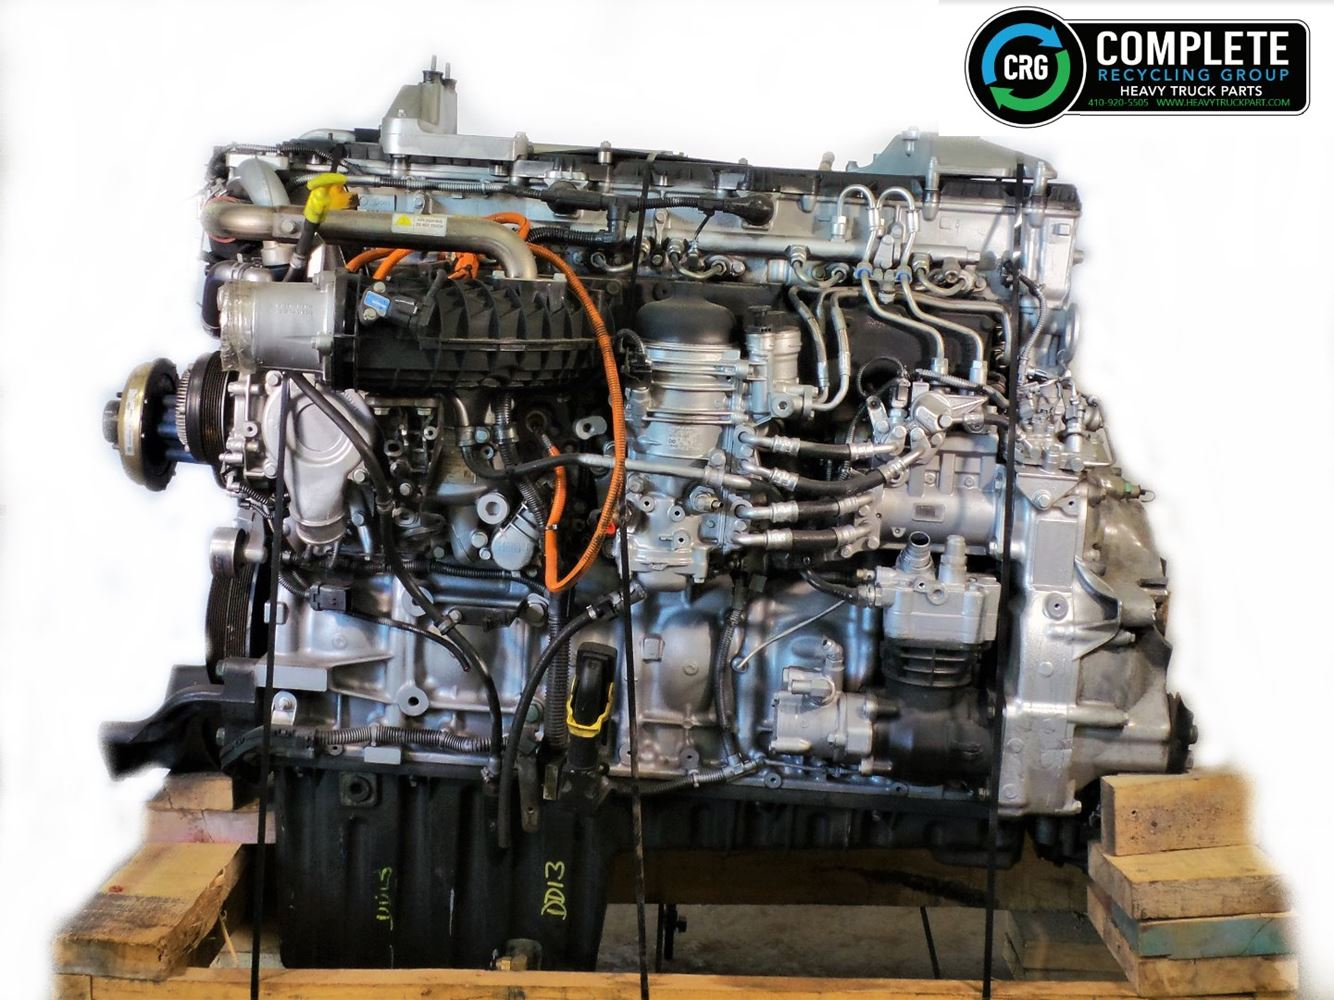 2017 DETROIT DD13 ENGINE ASSEMBLY TRUCK PARTS #679740